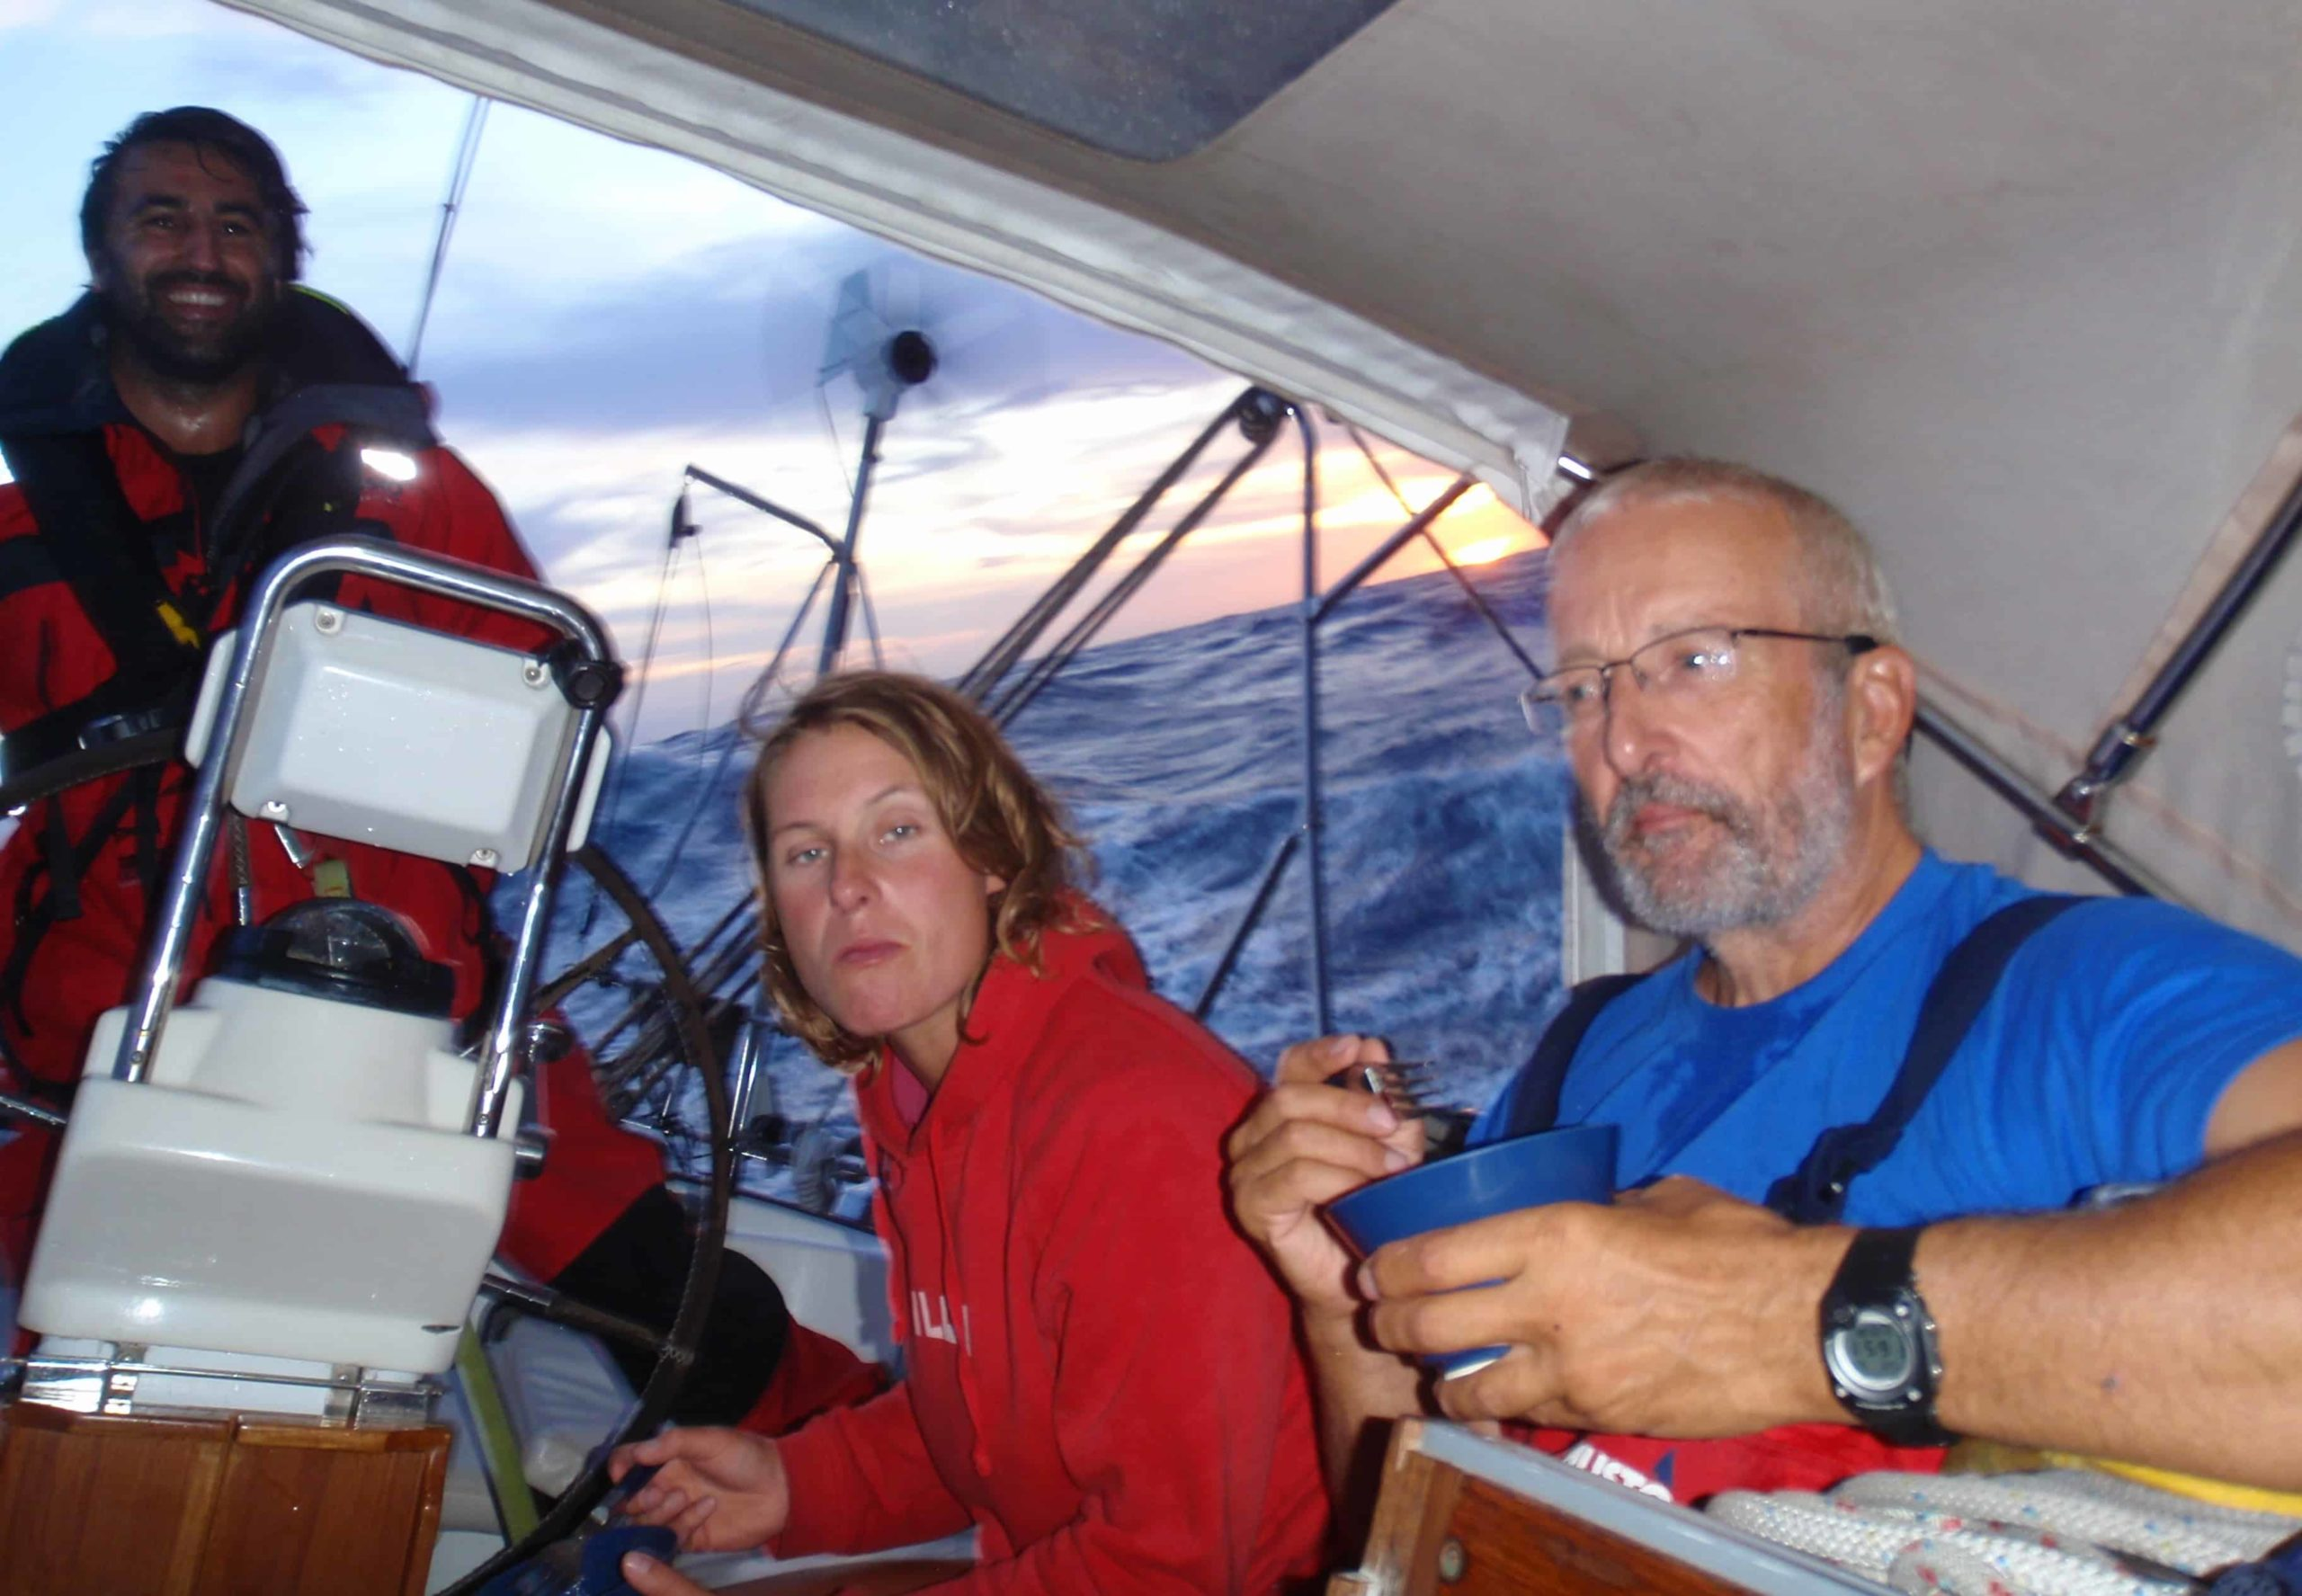 Crew meal time on a yacht delivery in the middle of the Atlantic